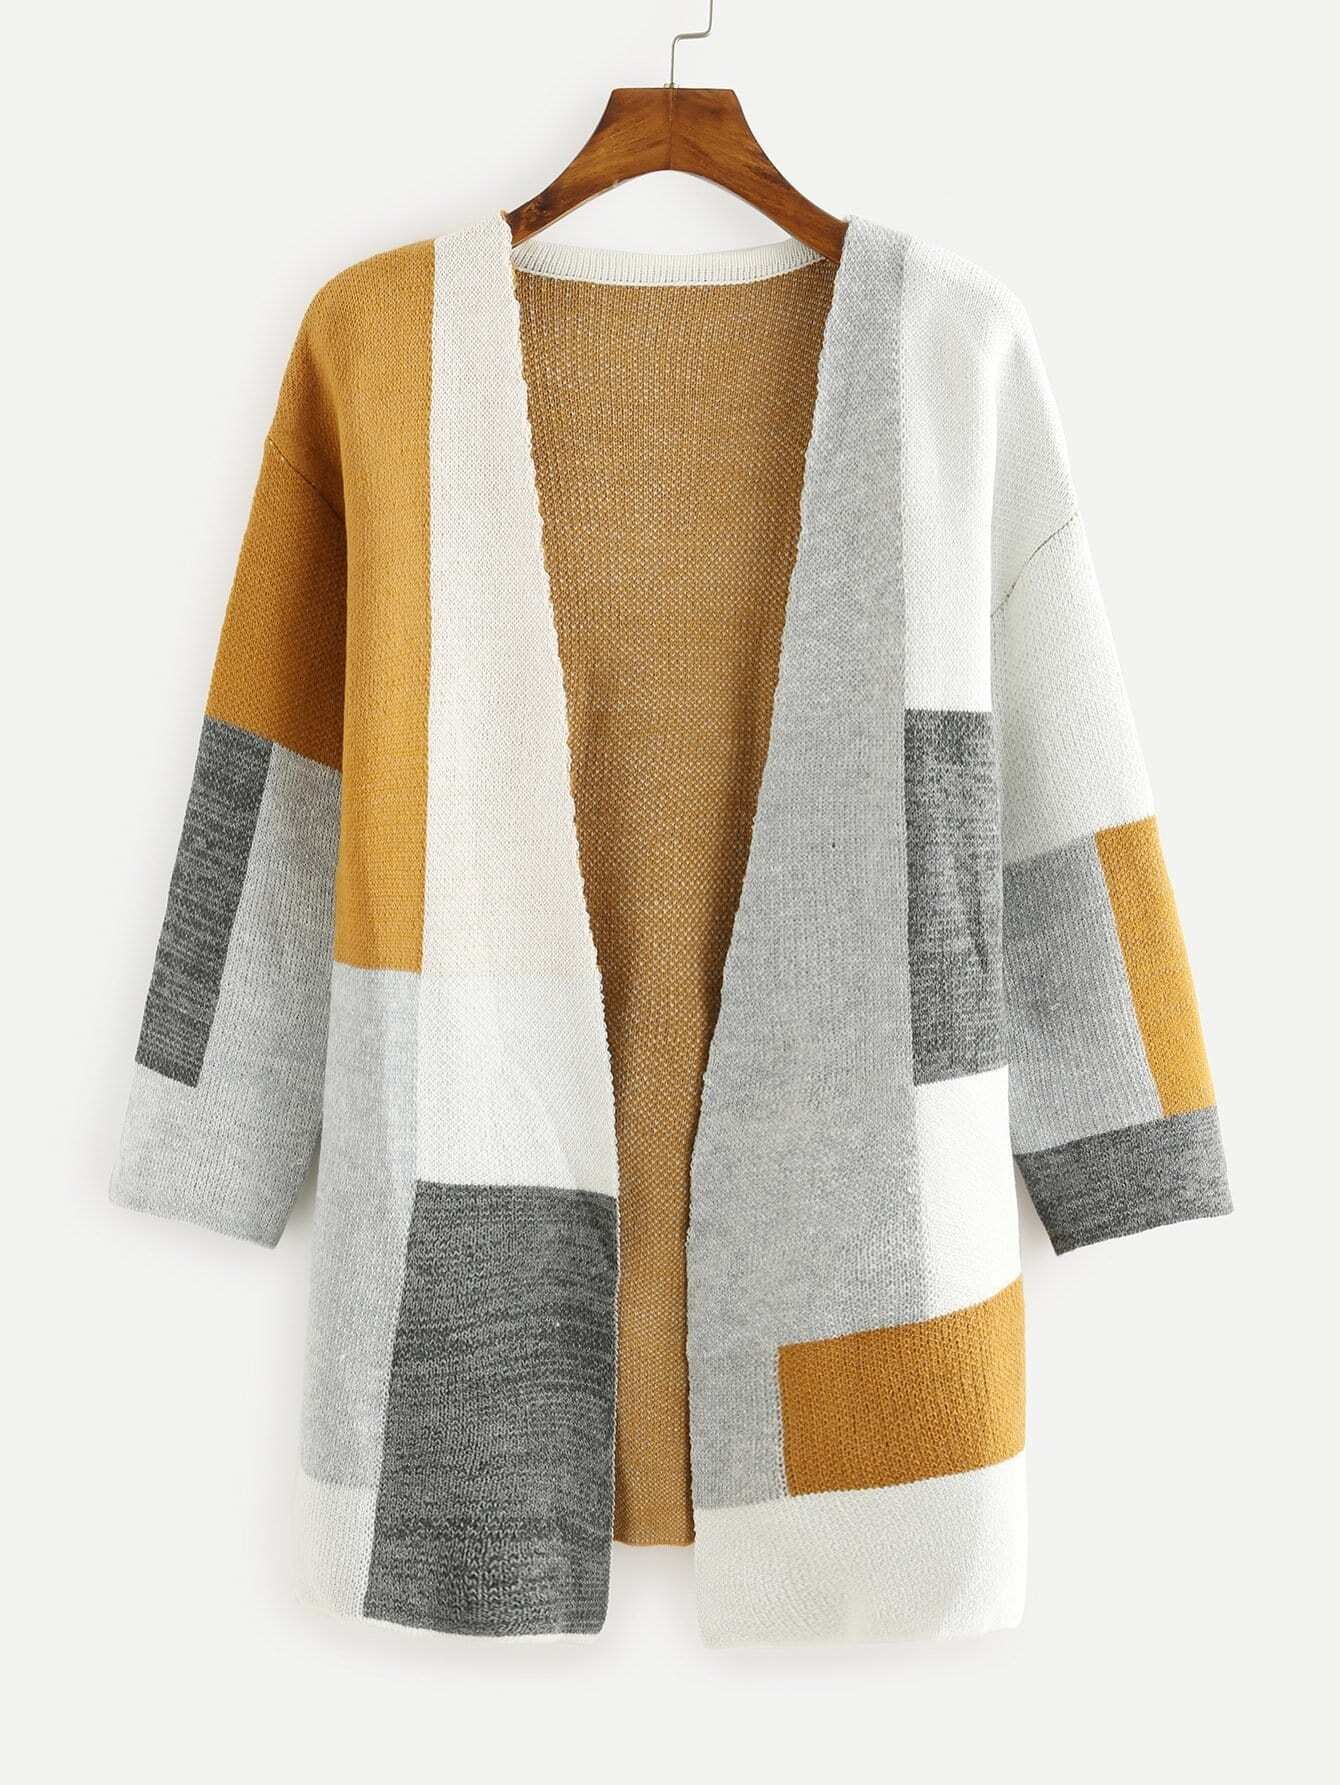 Colorblock Open Front Sweater Cardigan alfani new gray asymmetrical open front womens large l cardigan sweater $59 071